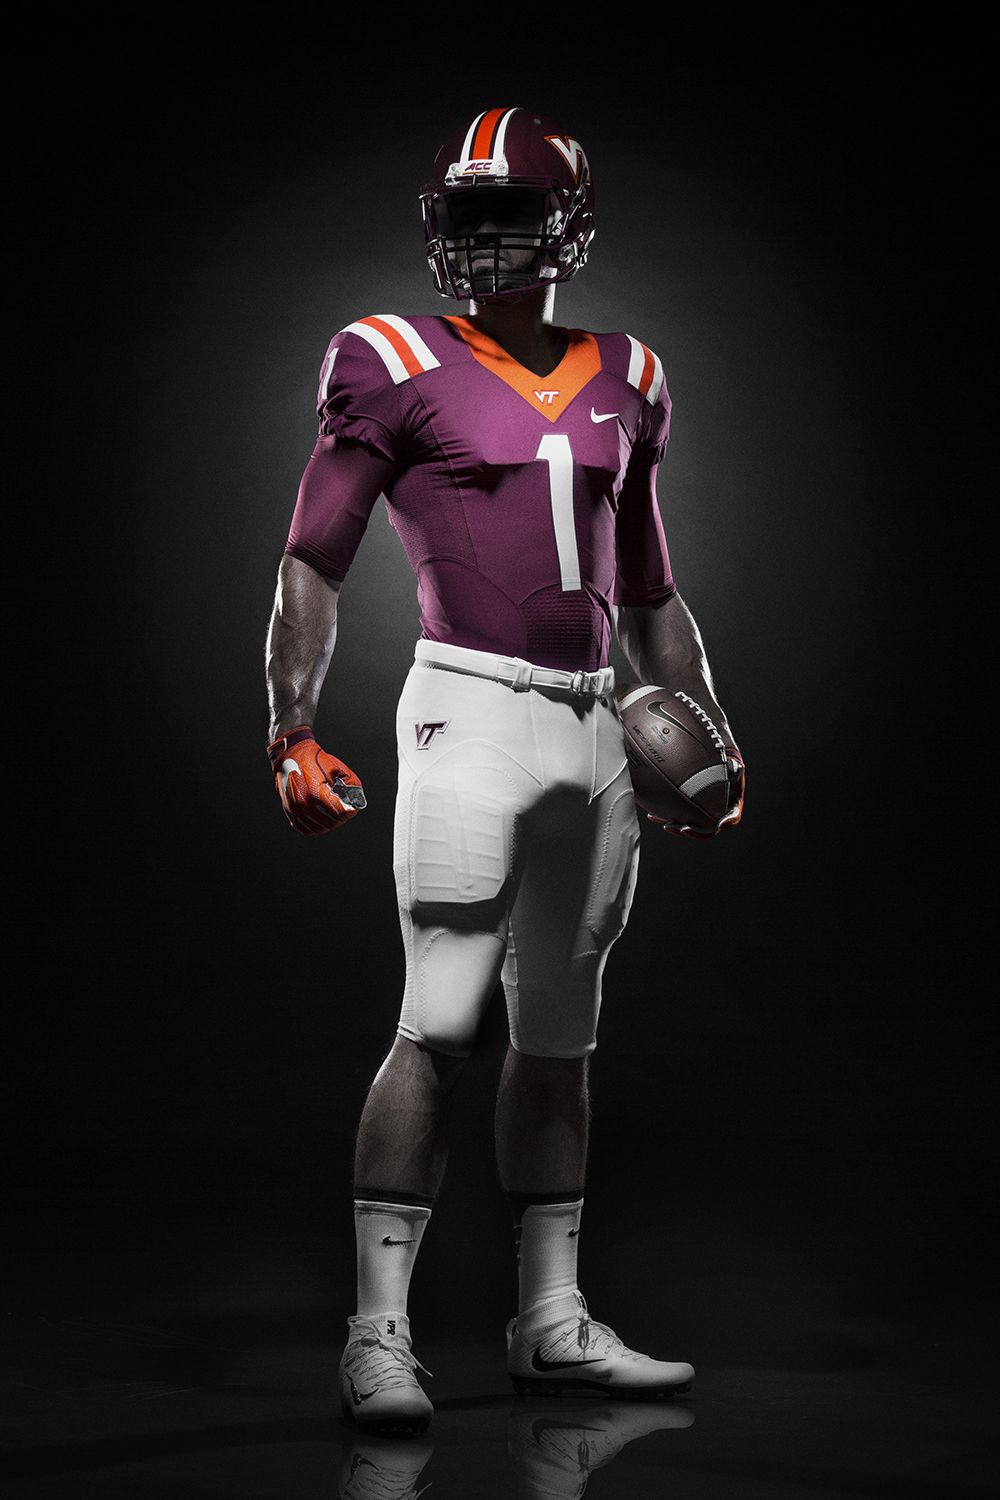 Virginia Tech Hokies 2016 football uniforms Funky